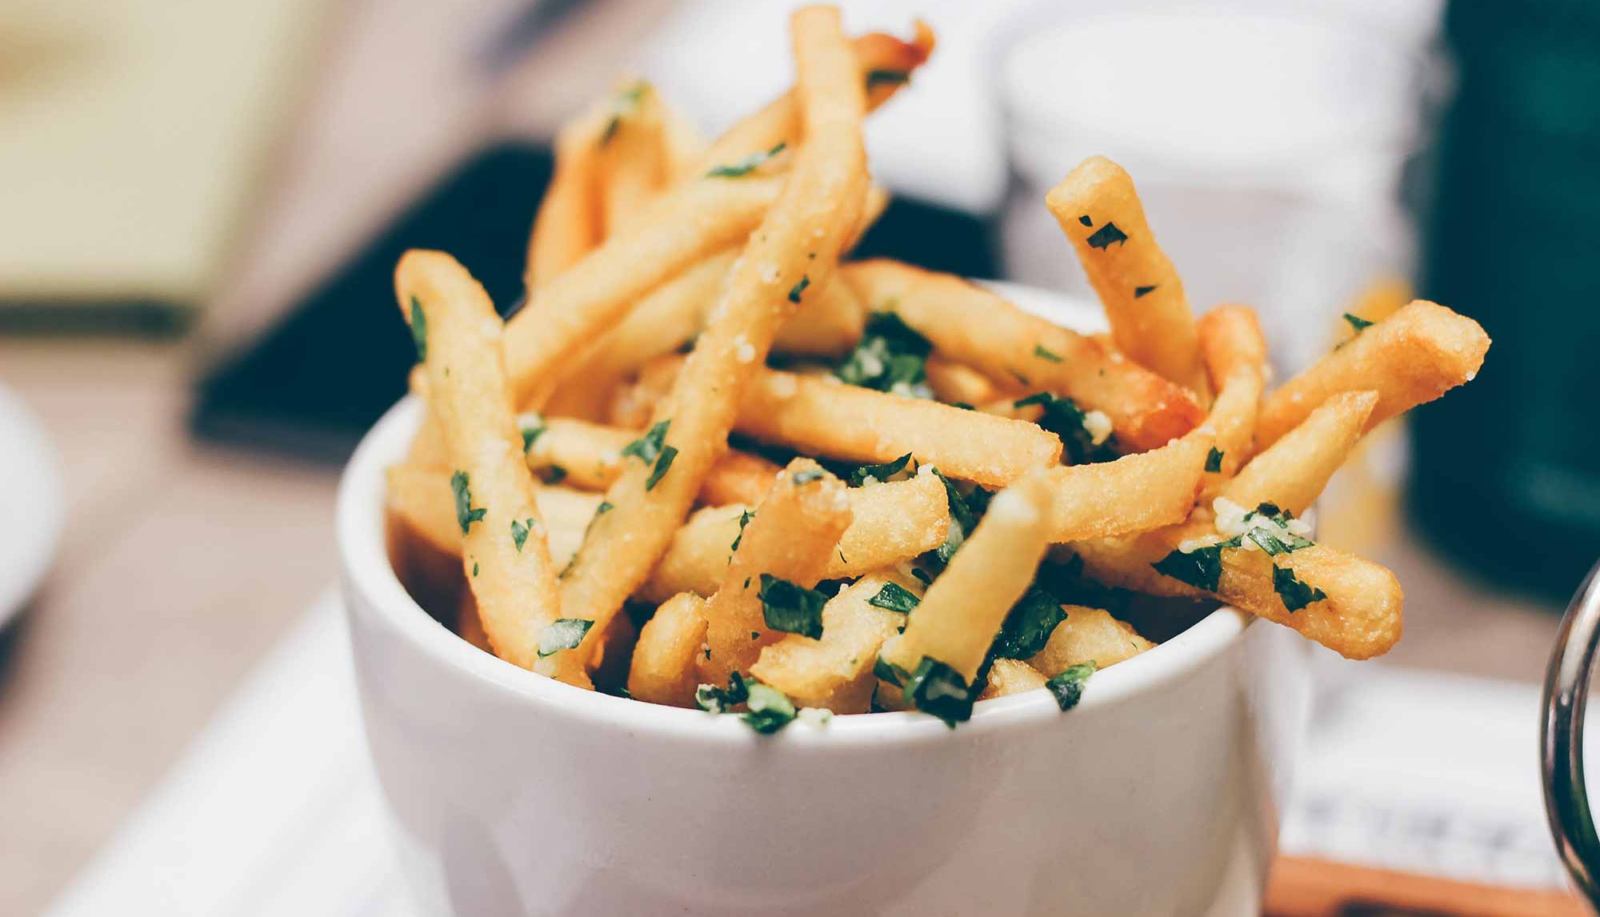 French fries or chips - the importance of marketing terminology